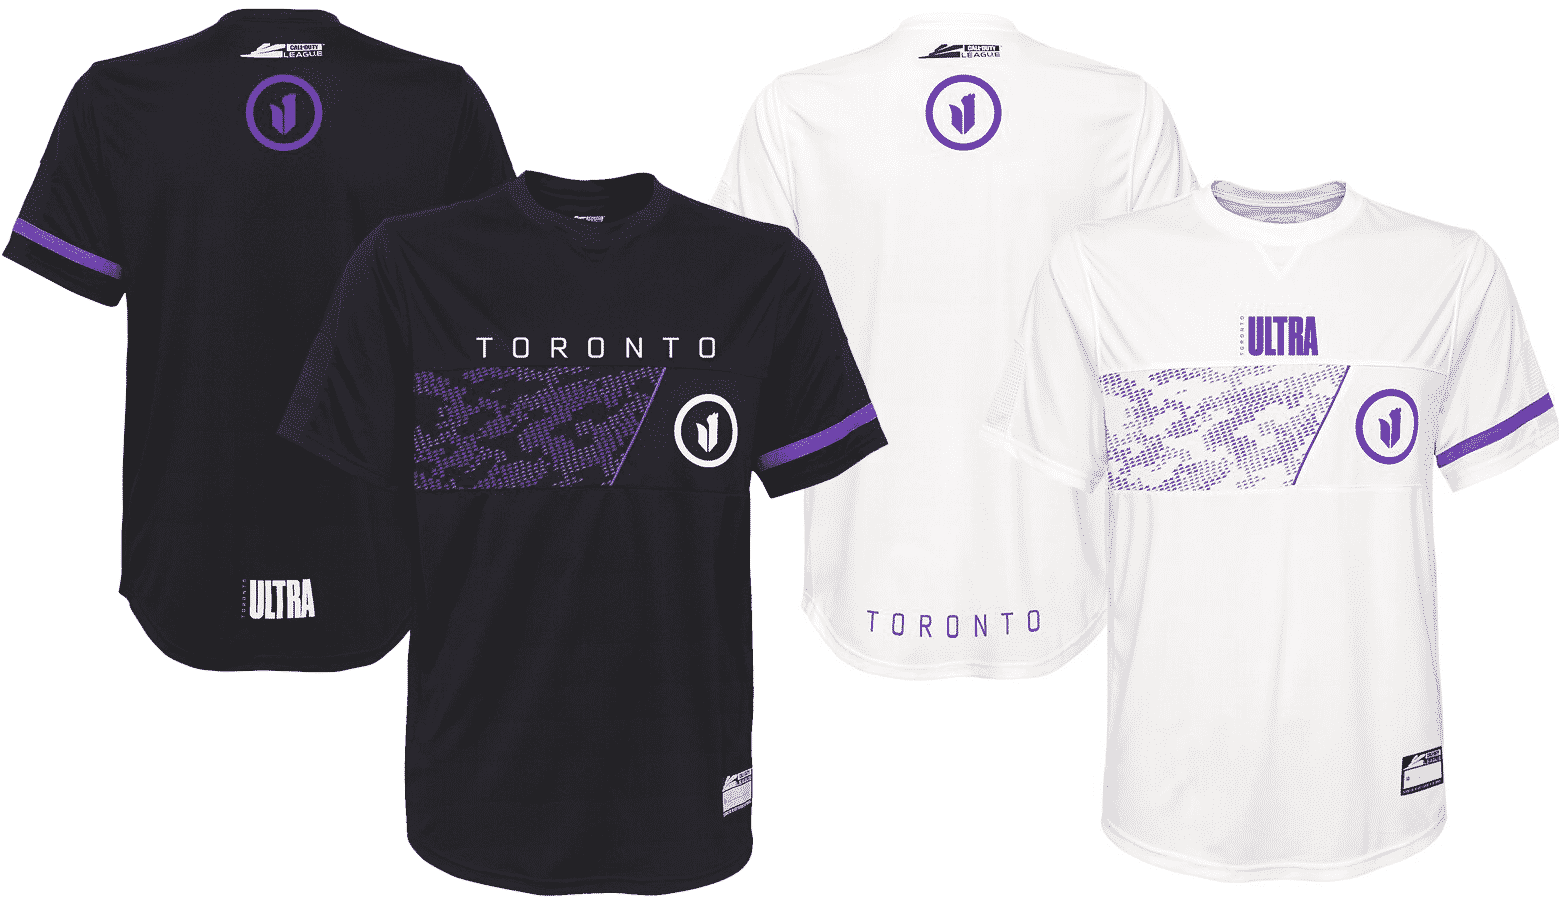 Toronto Ultra Jersey Call of Duty League 2020 Esports